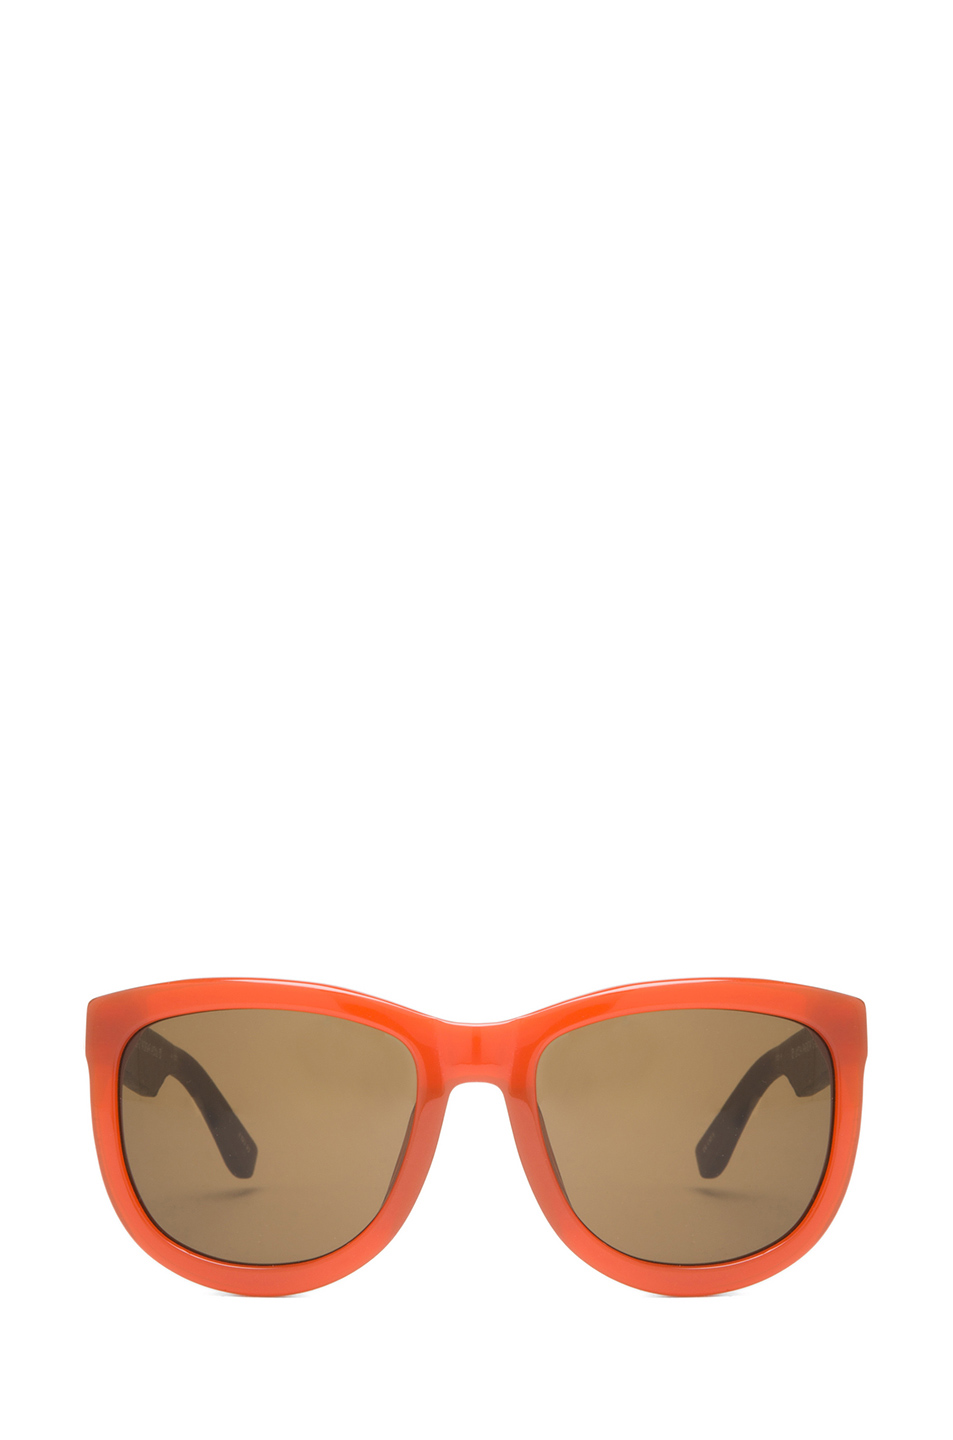 The Row | Rounded Wayfarer Sunglasses in Rust & Walnut